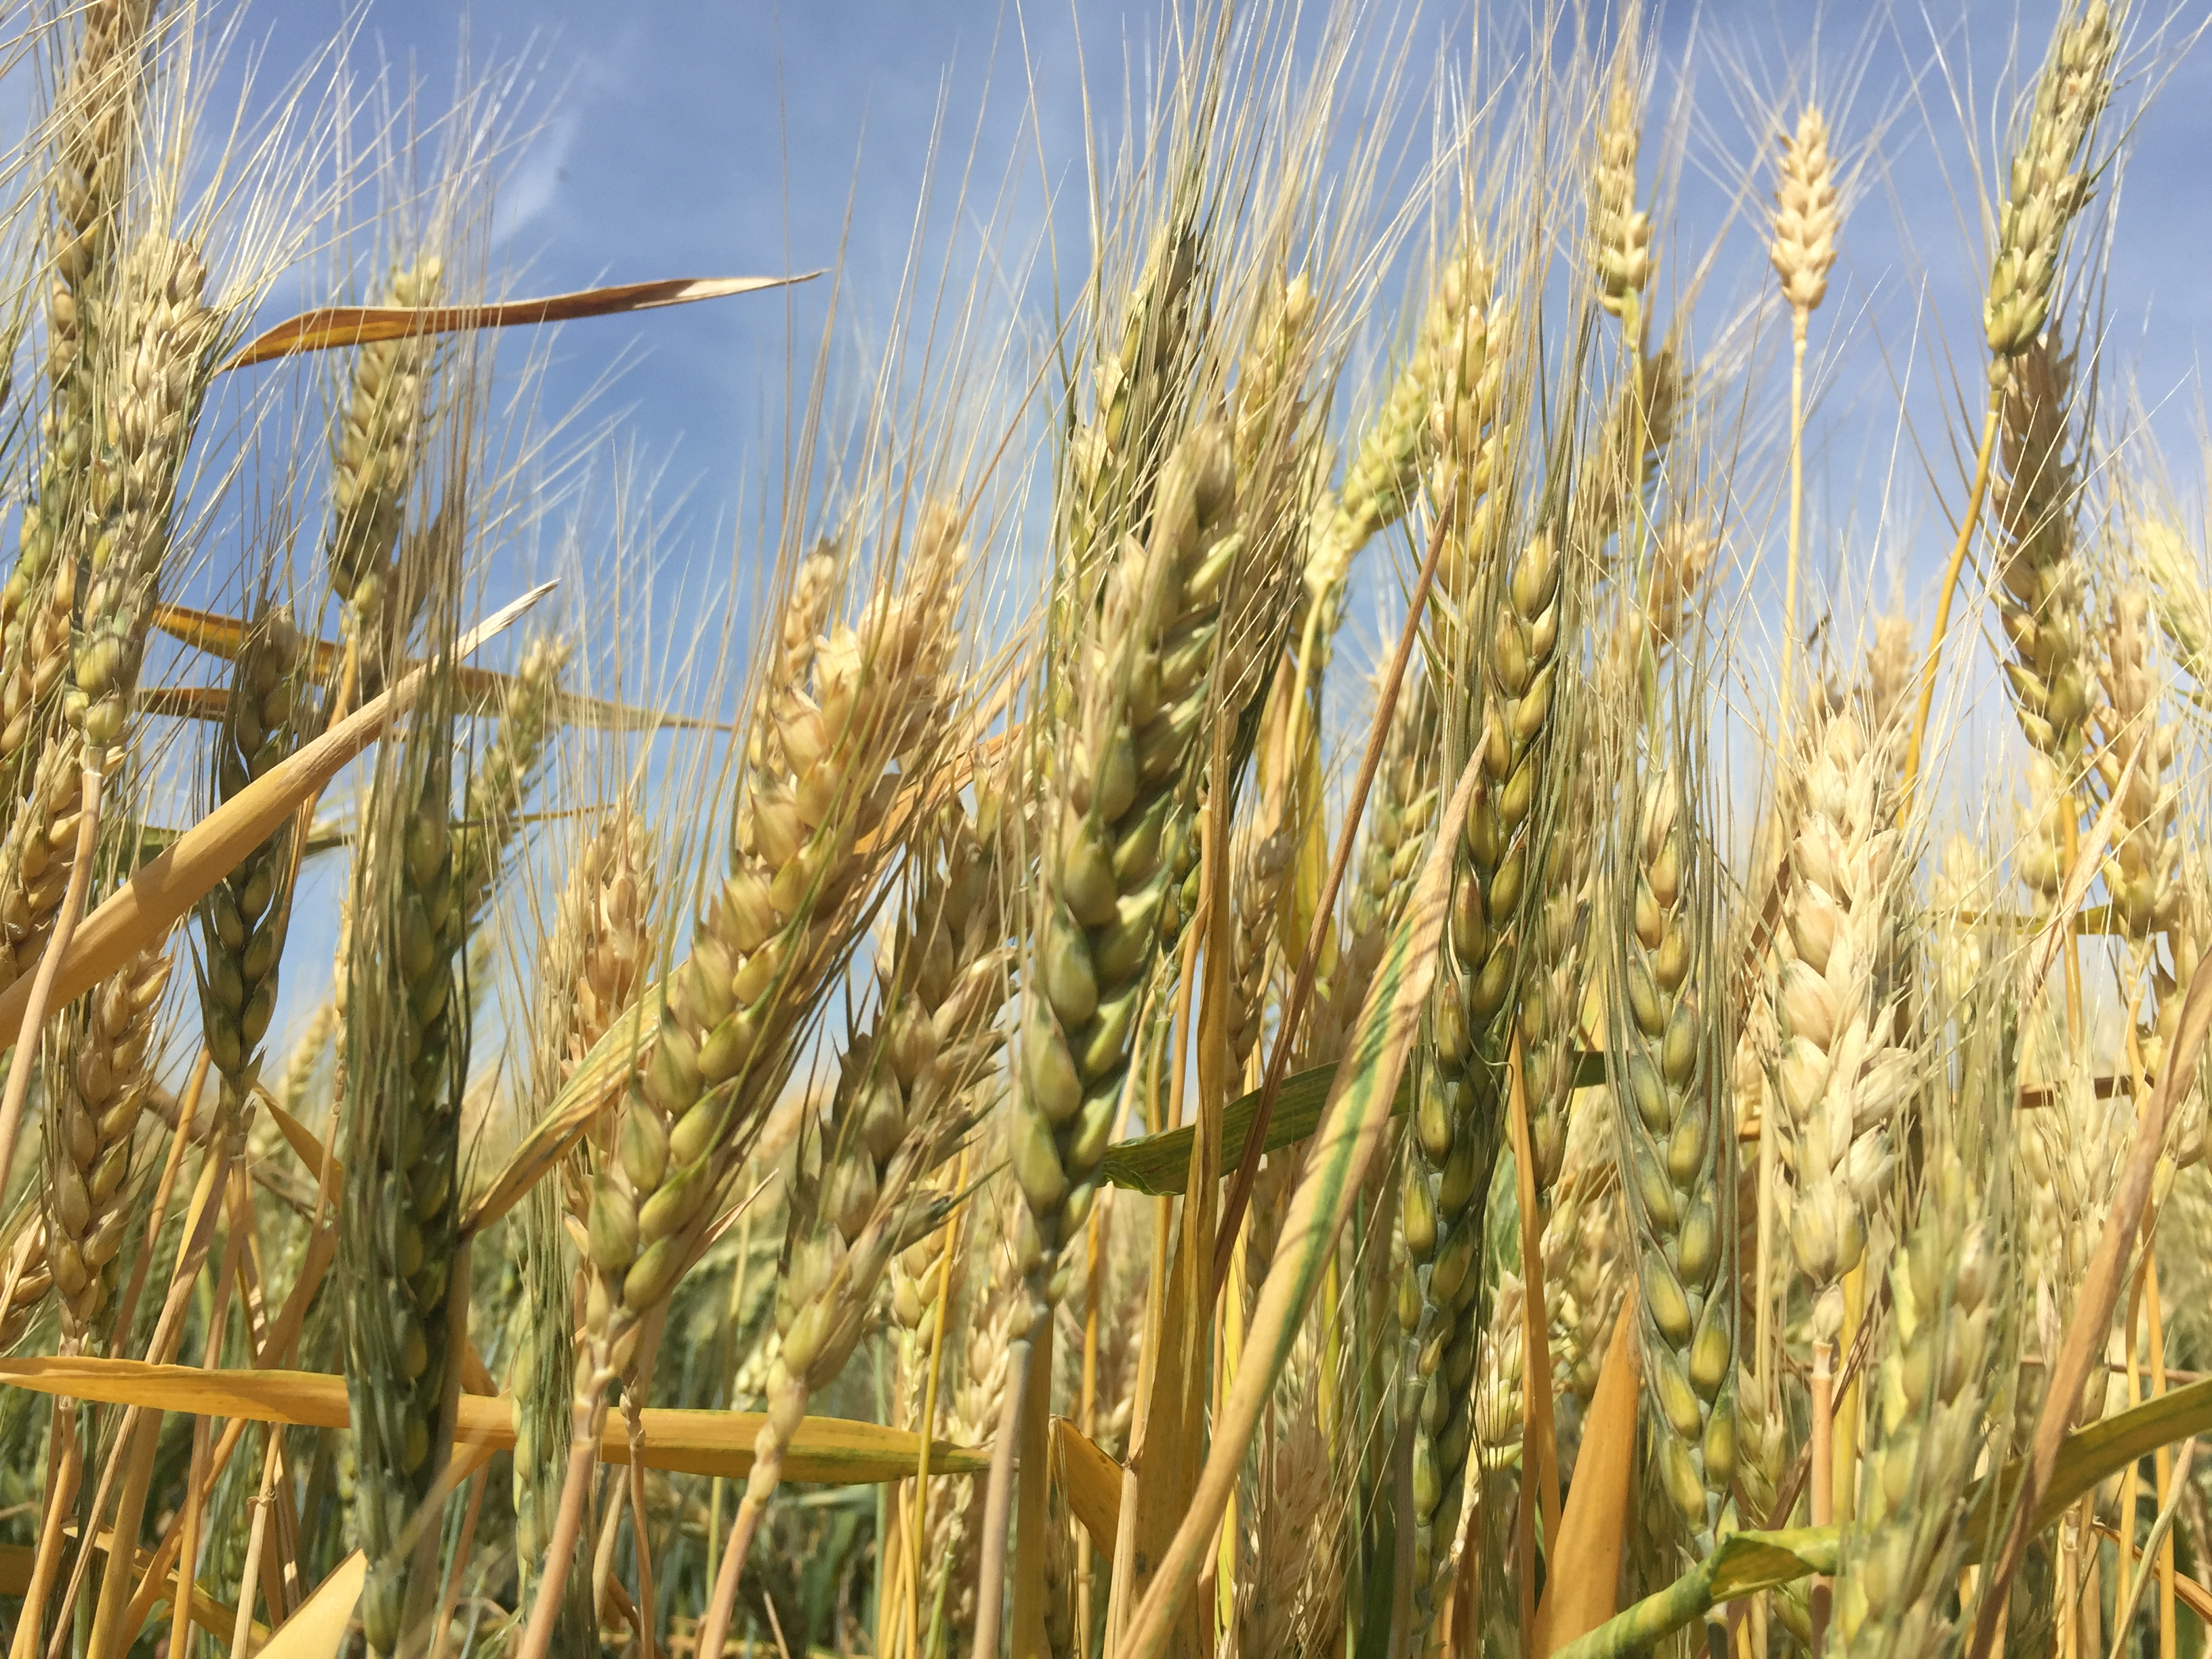 WHEAT AS A GEOPOLITICAL WEAPON FOR RUSSIA